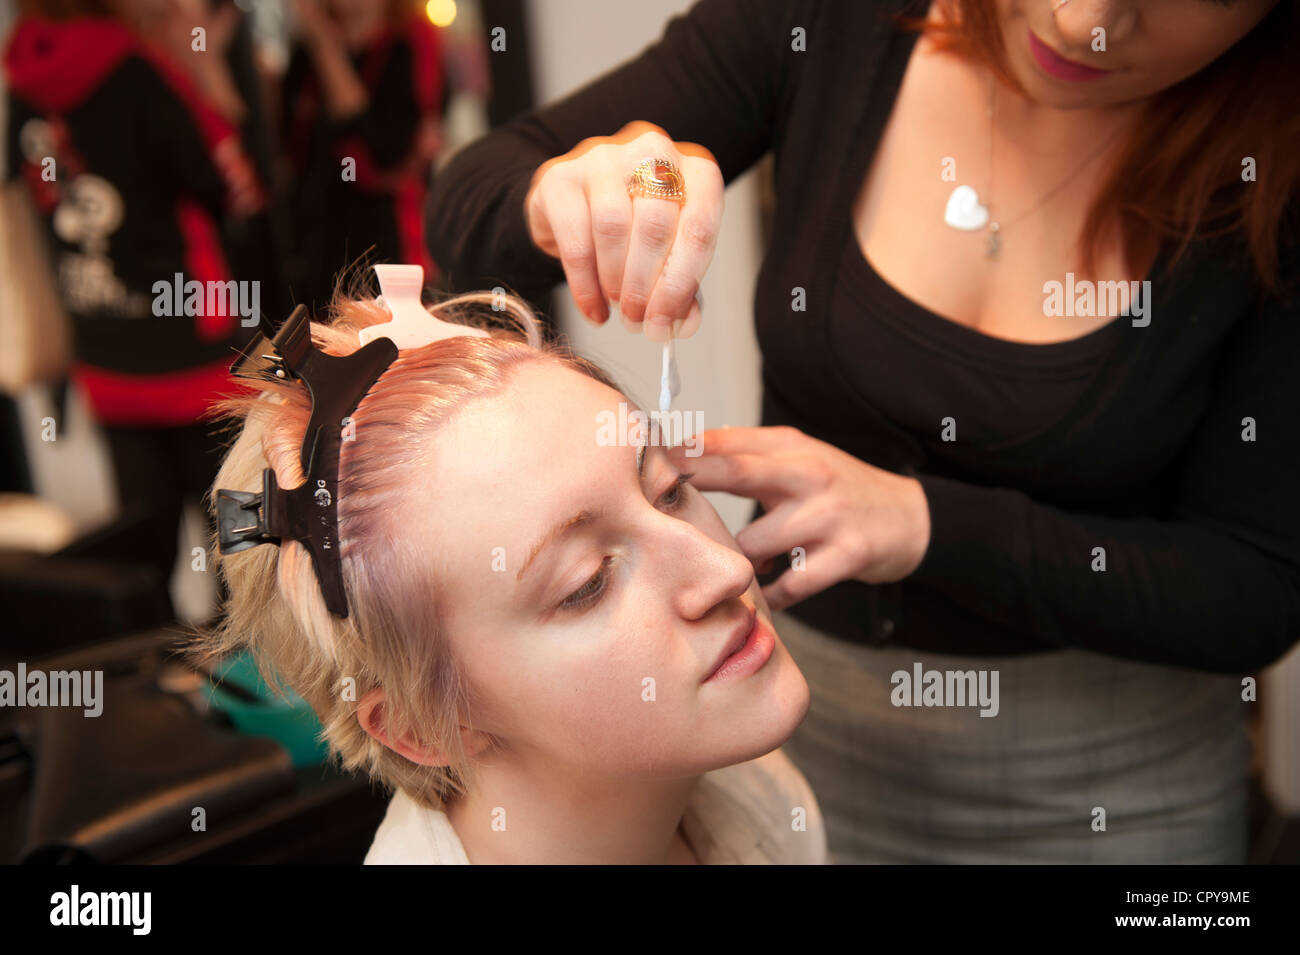 A young woman having a hair and make up beauty make-over in a salon, bleaching her eyebrows, UK Stock Photo